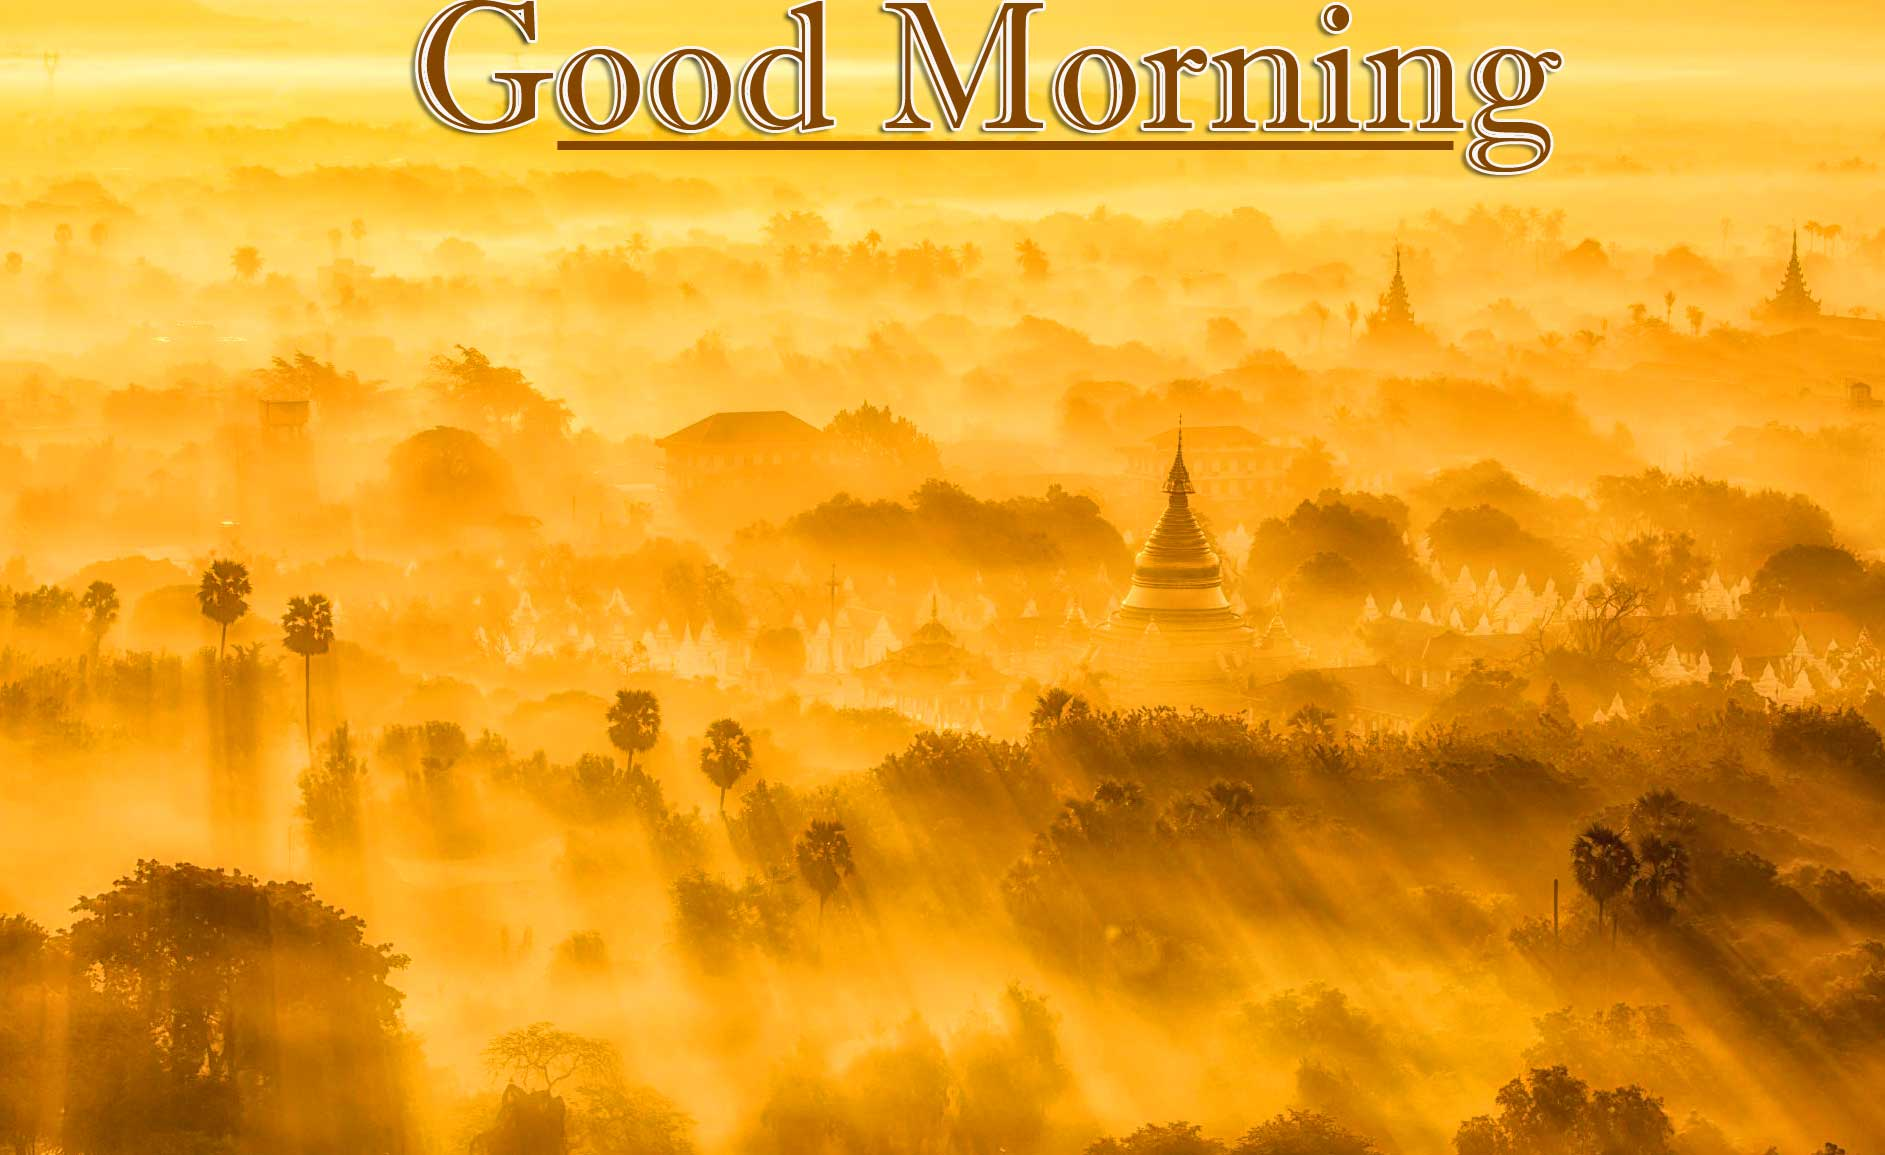 Best Free Beautiful Free Good Morning Wishes With Sunrise Pics Free For Facebook